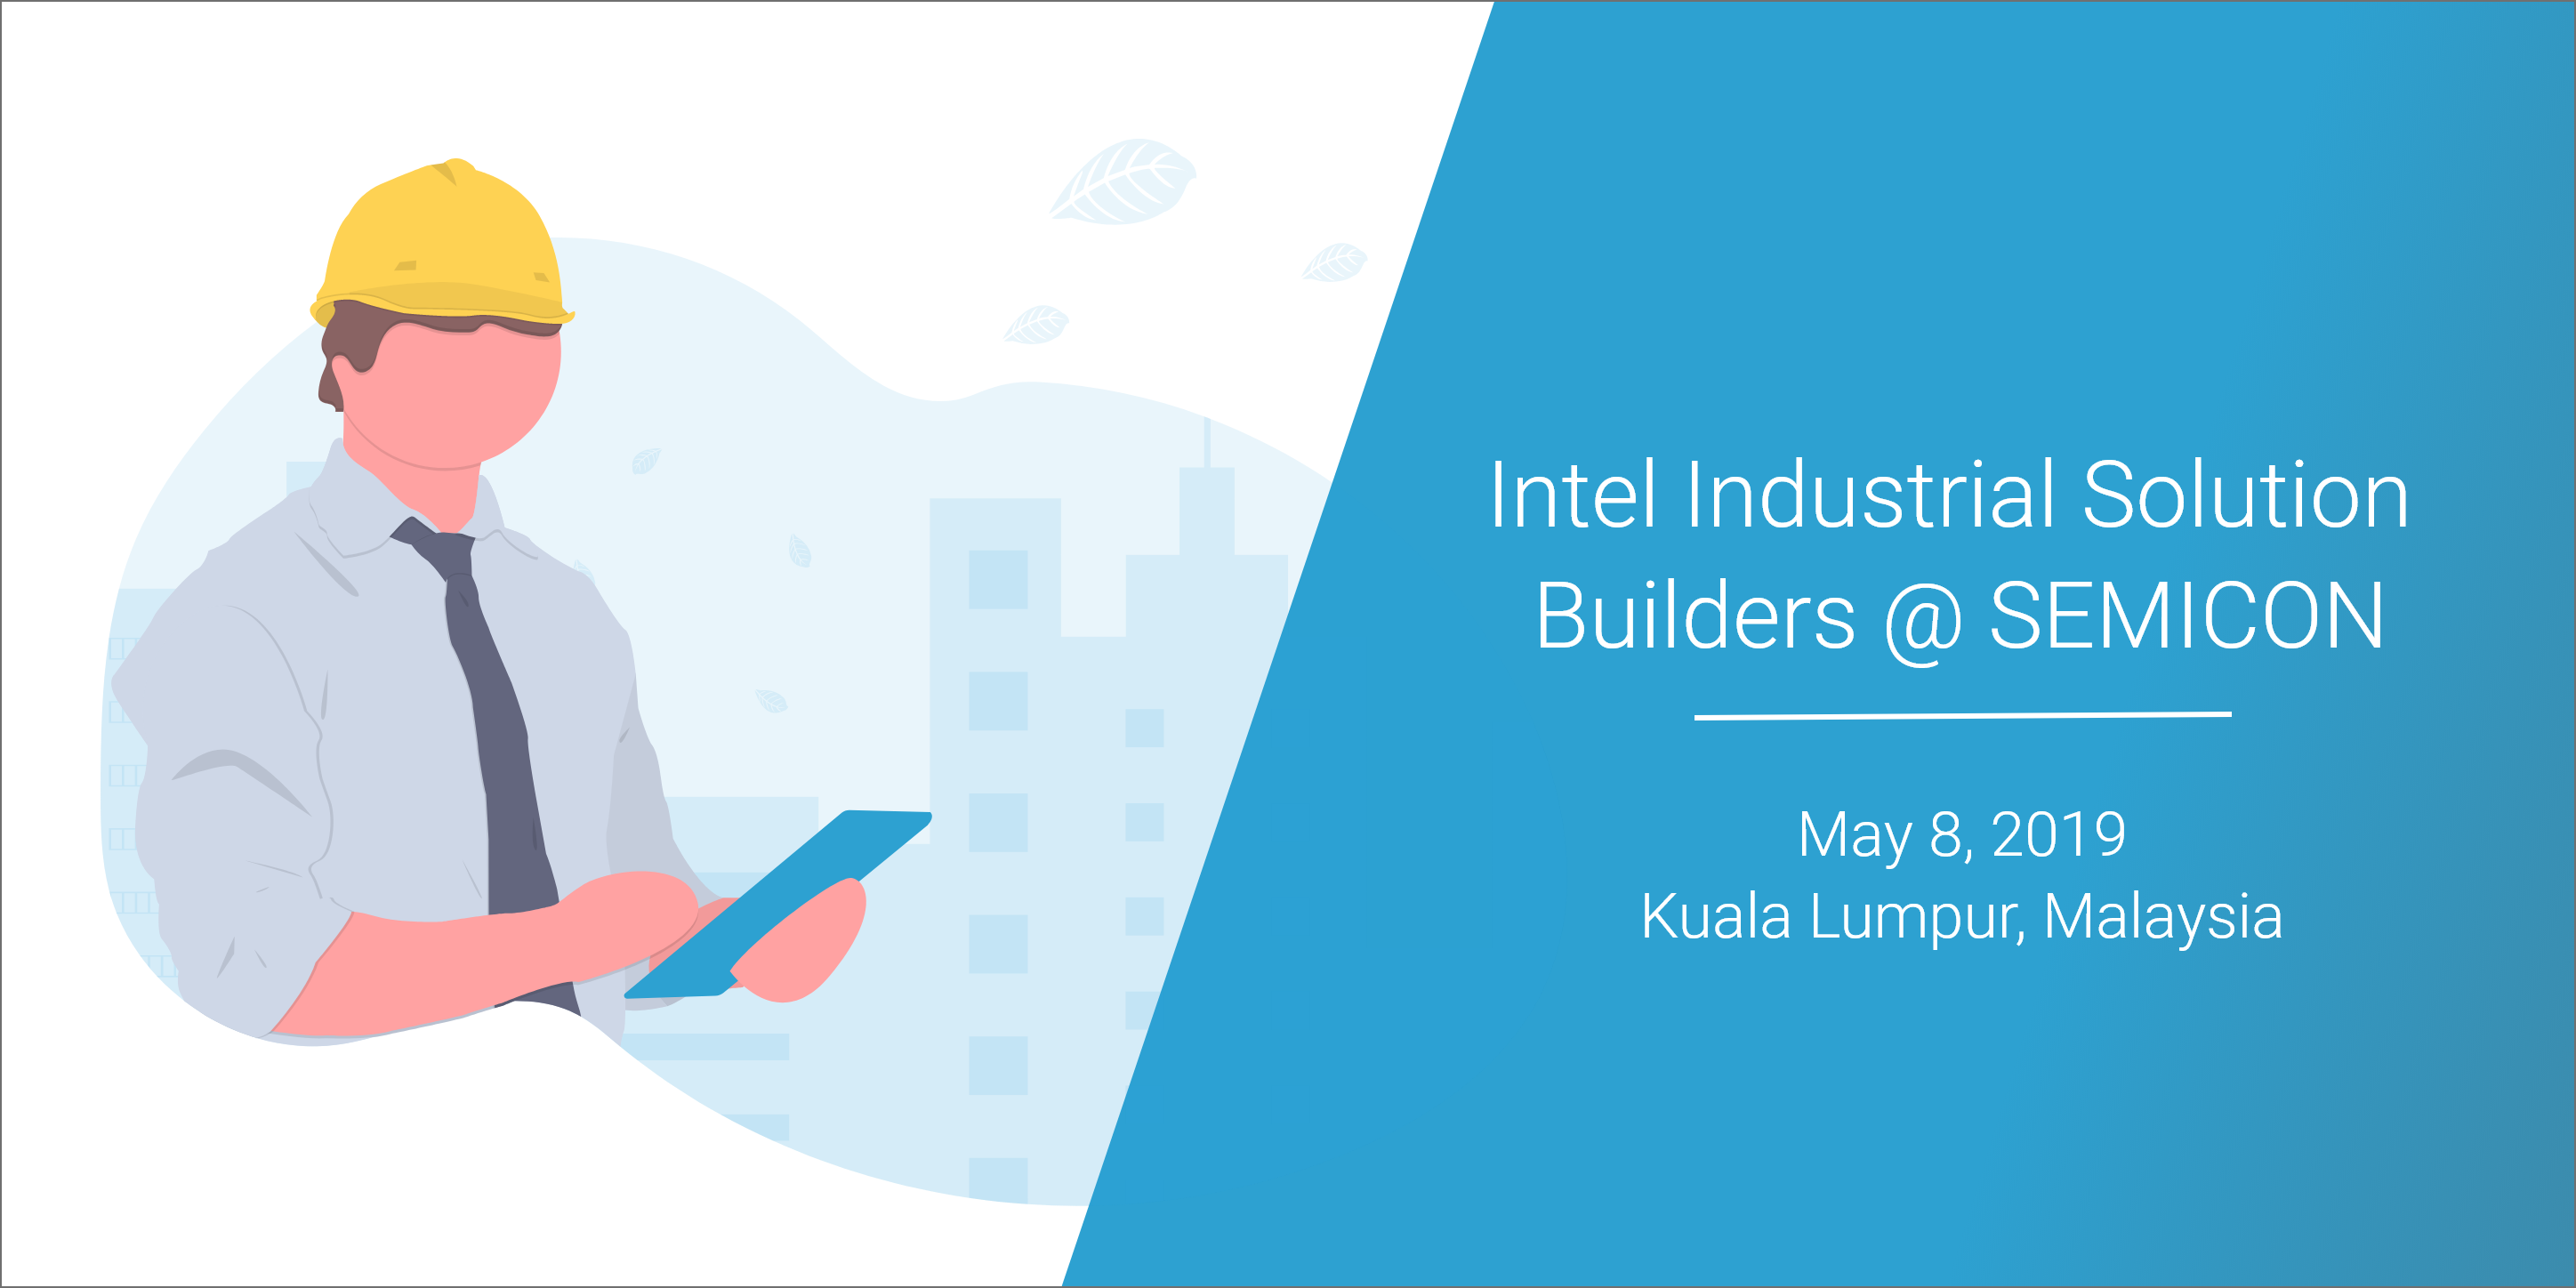 Intel Industrial Solution Builders